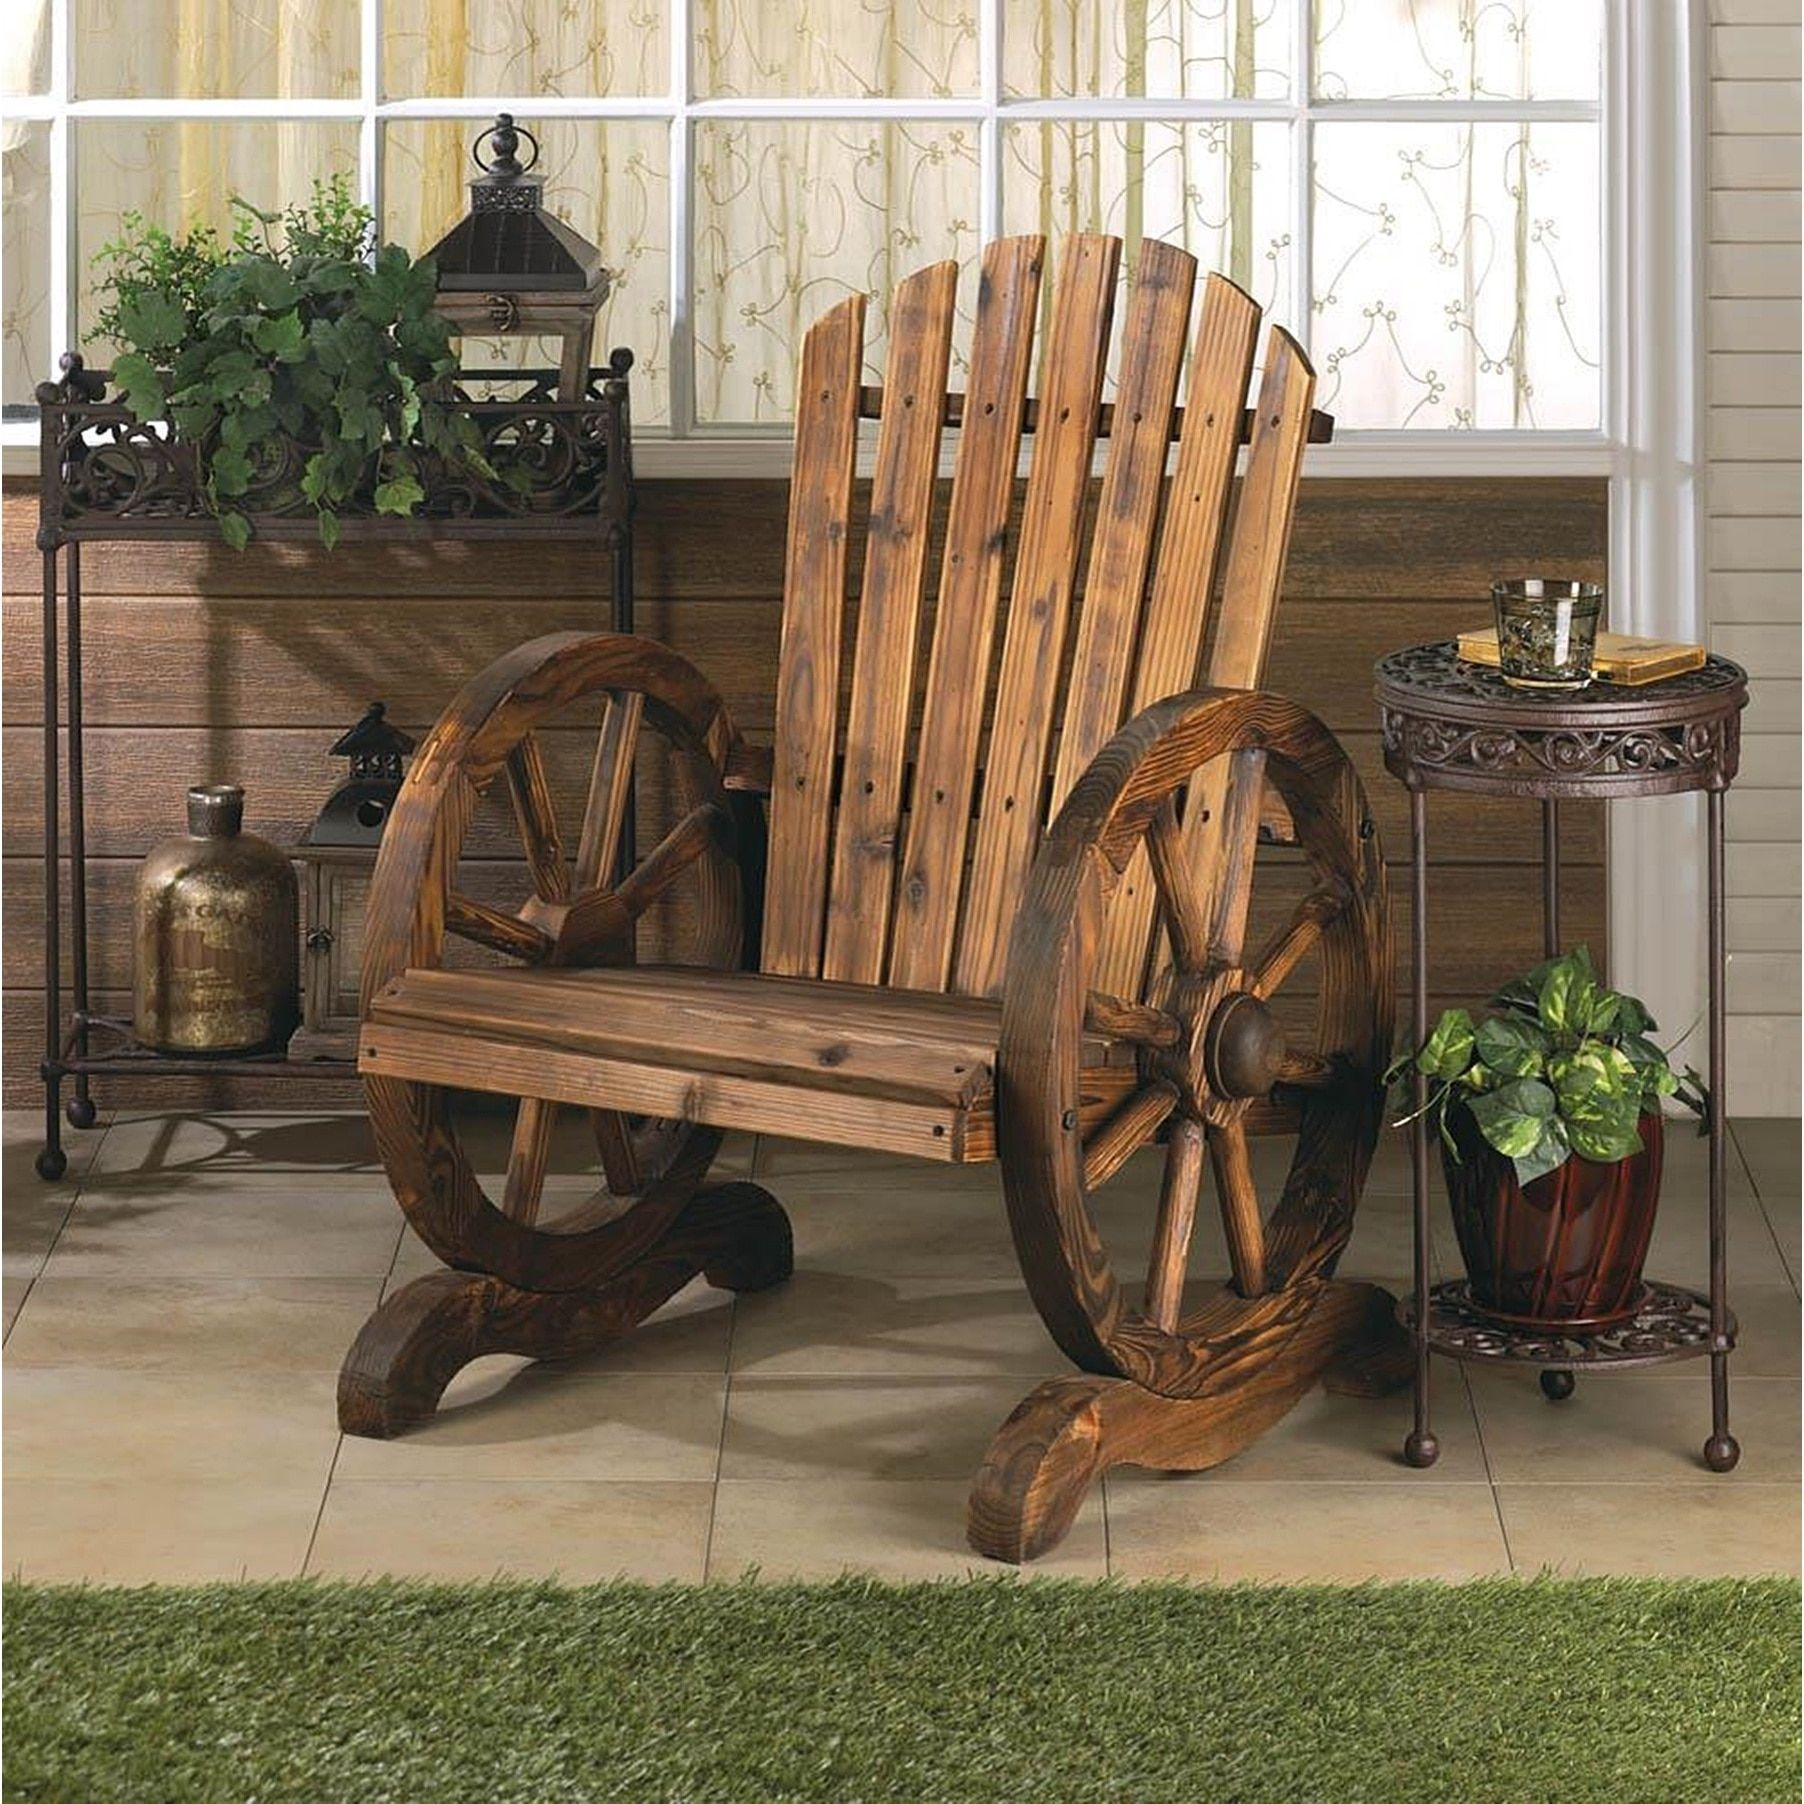 Olmstead Wooden Country Style Wagon Chair, Brown, Size Single, Patio Furniture